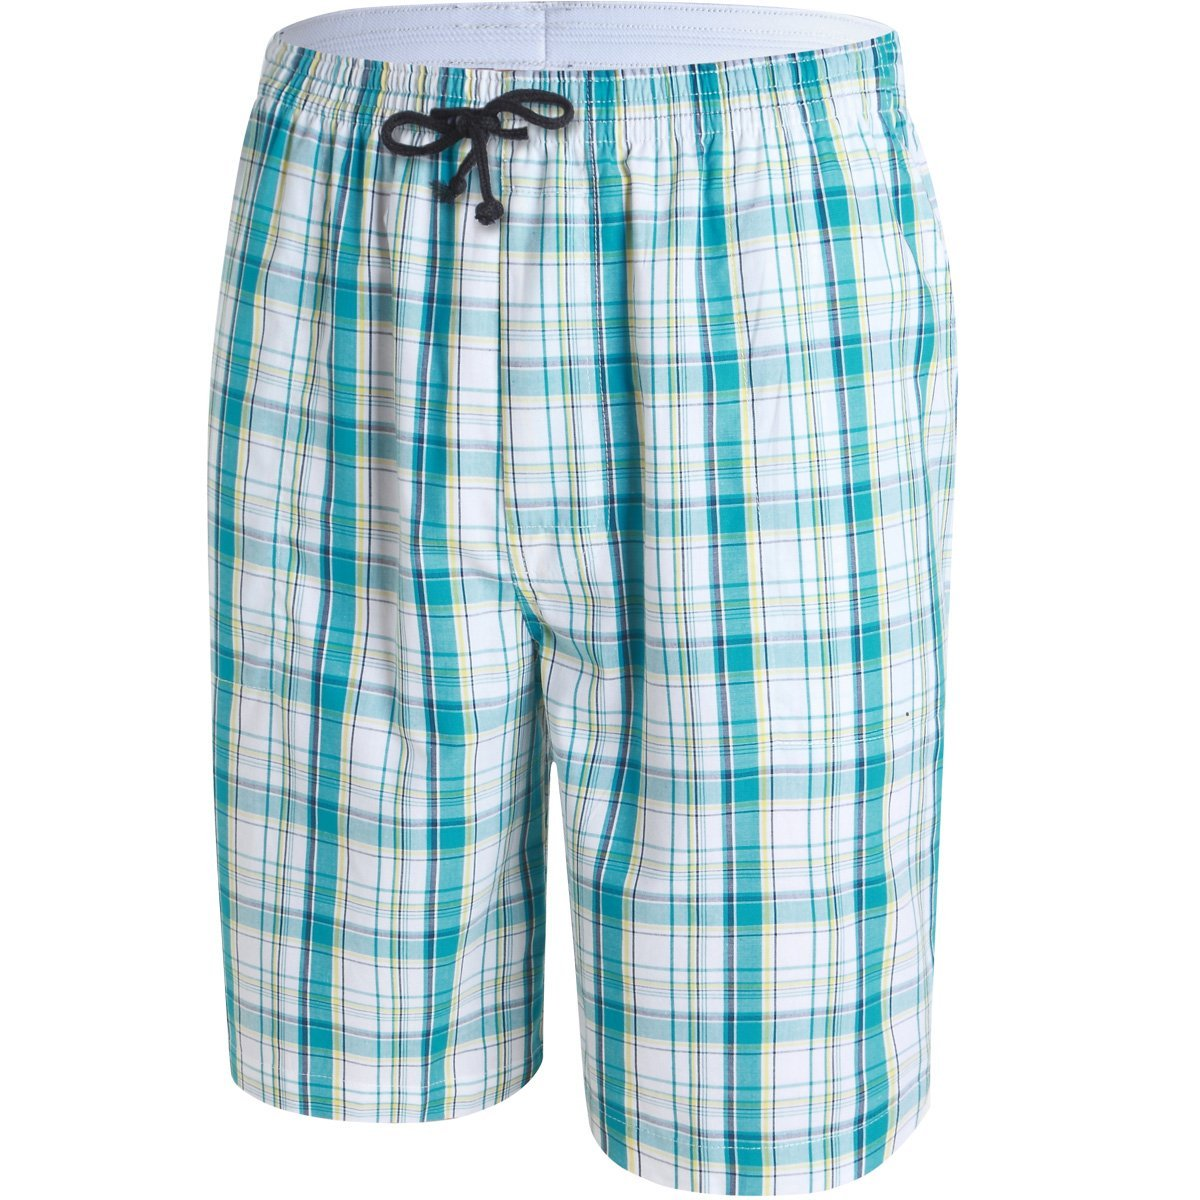 JINSHI Mens Lounge/Sleep Shorts Plaid Poplin Woven 100% Cotton 3Pack 2XL by JINSHI (Image #2)